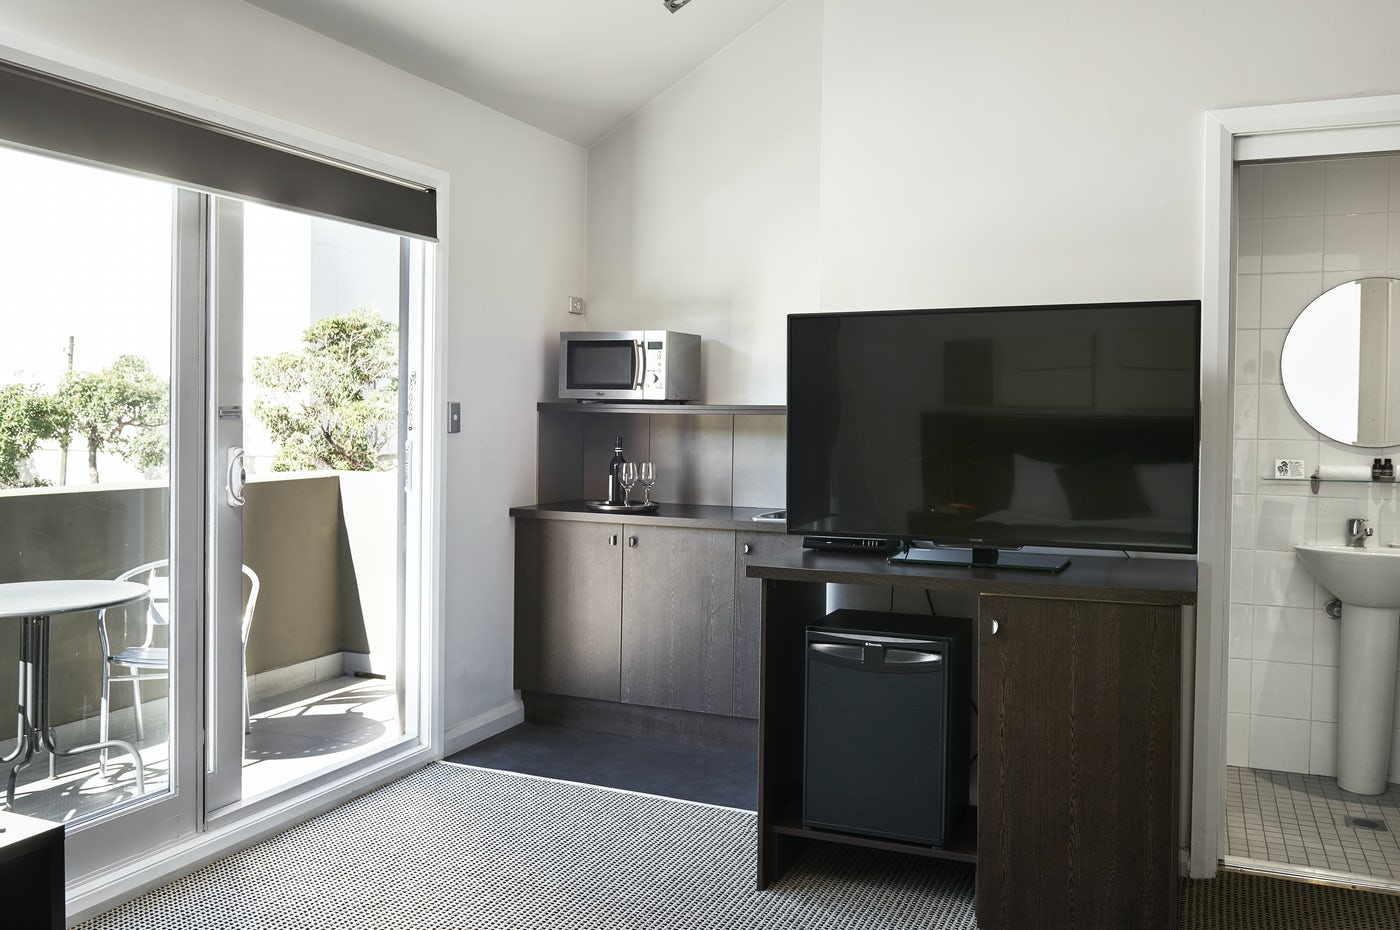 Vulcan Hotel Boutique Accommodation Superior Room kitchenette